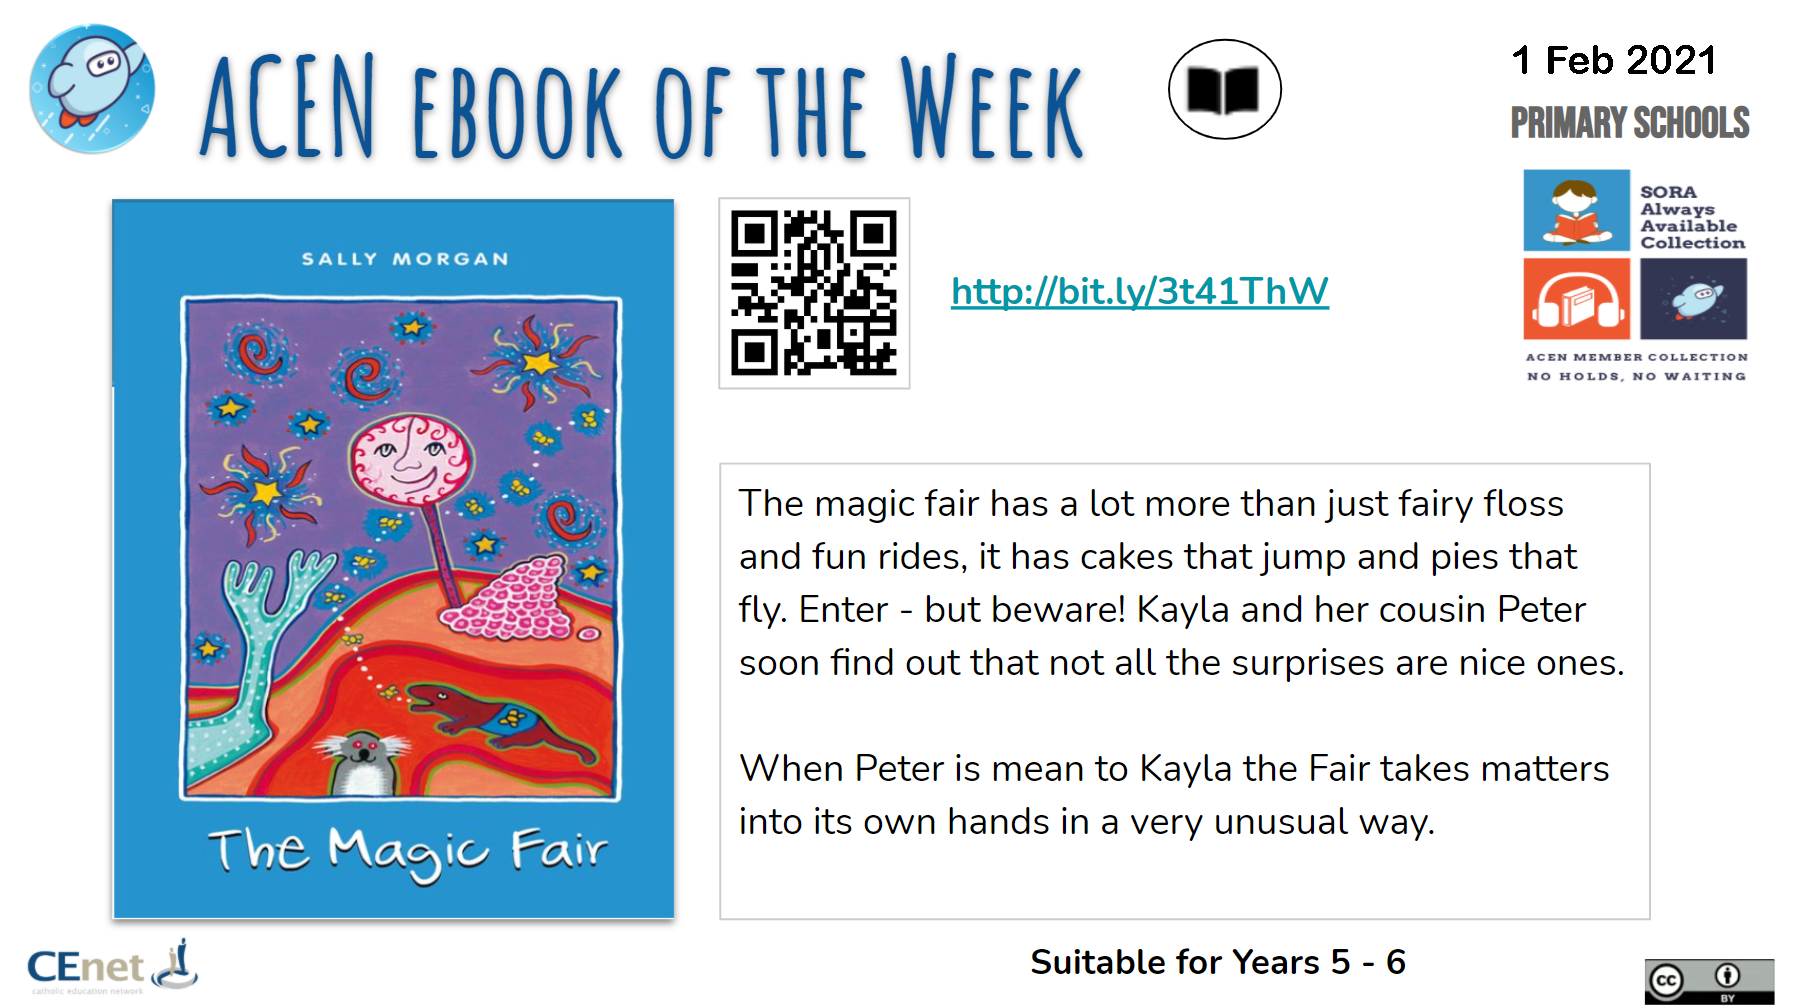 Image,  ACEN Book of the Week for Primary School Students